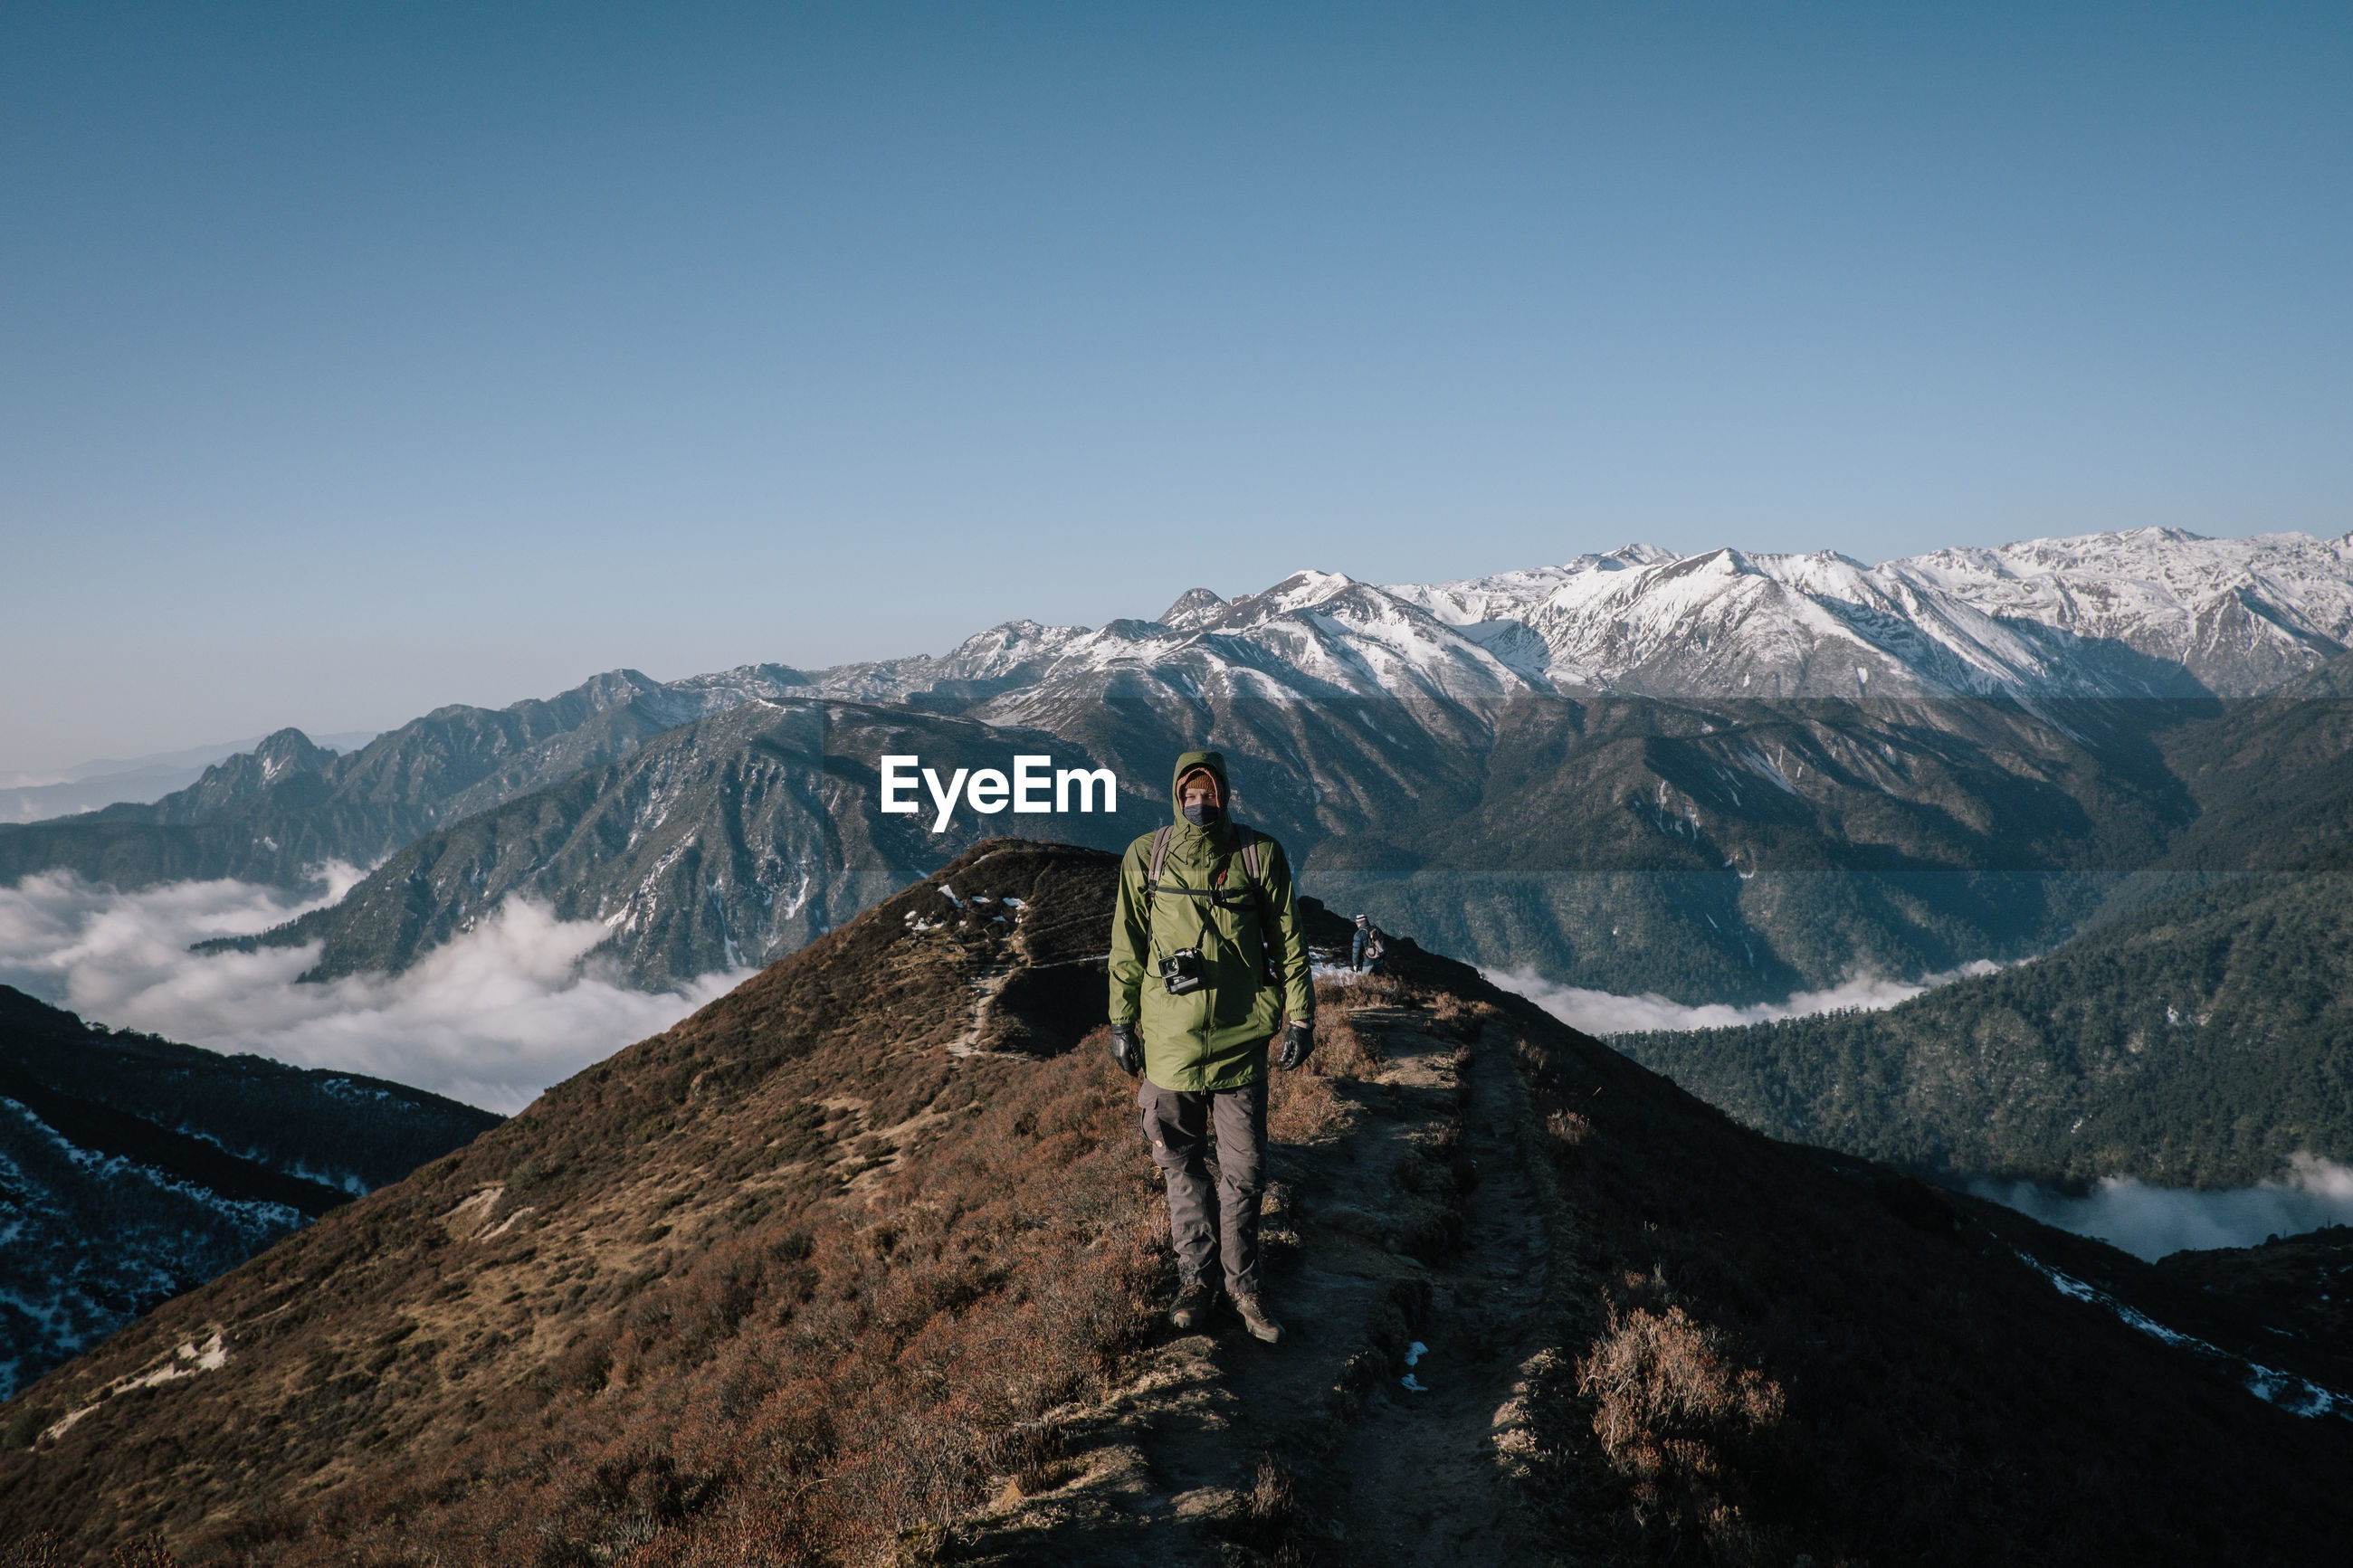 REAR VIEW OF PERSON ON SNOWCAPPED MOUNTAIN AGAINST CLEAR SKY